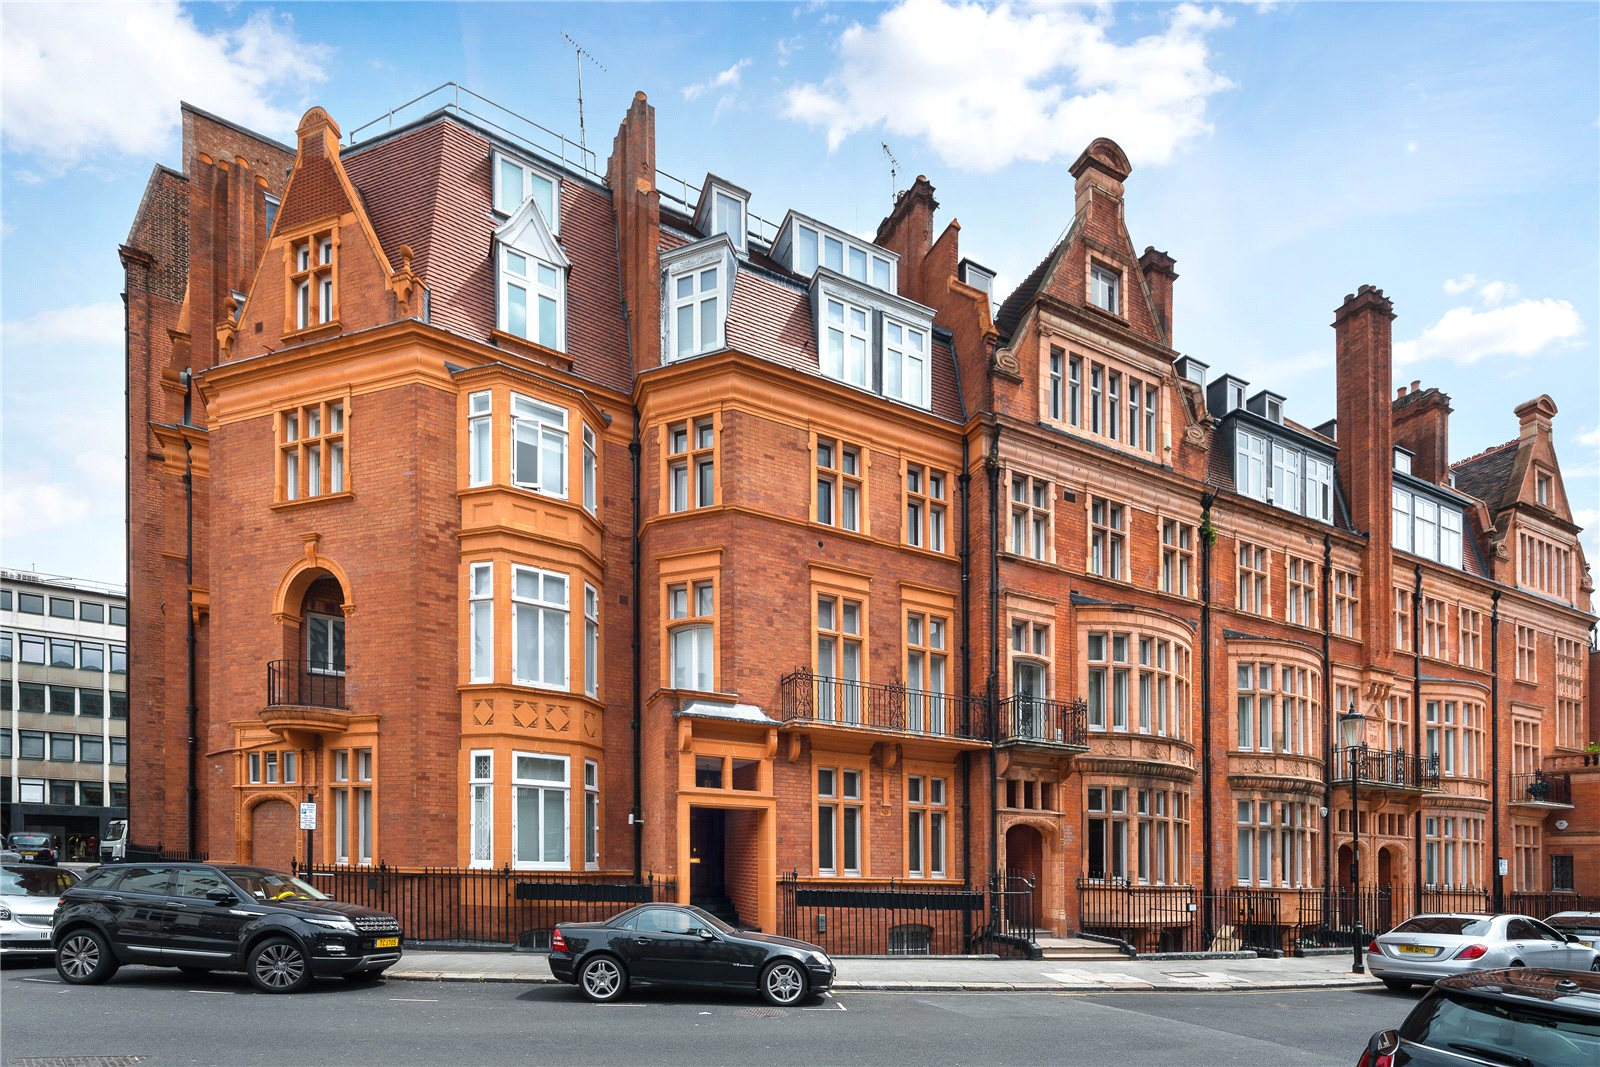 2 Bedroom Flat For Sale In Herbert Crescent Knightsbridge Sw1x London